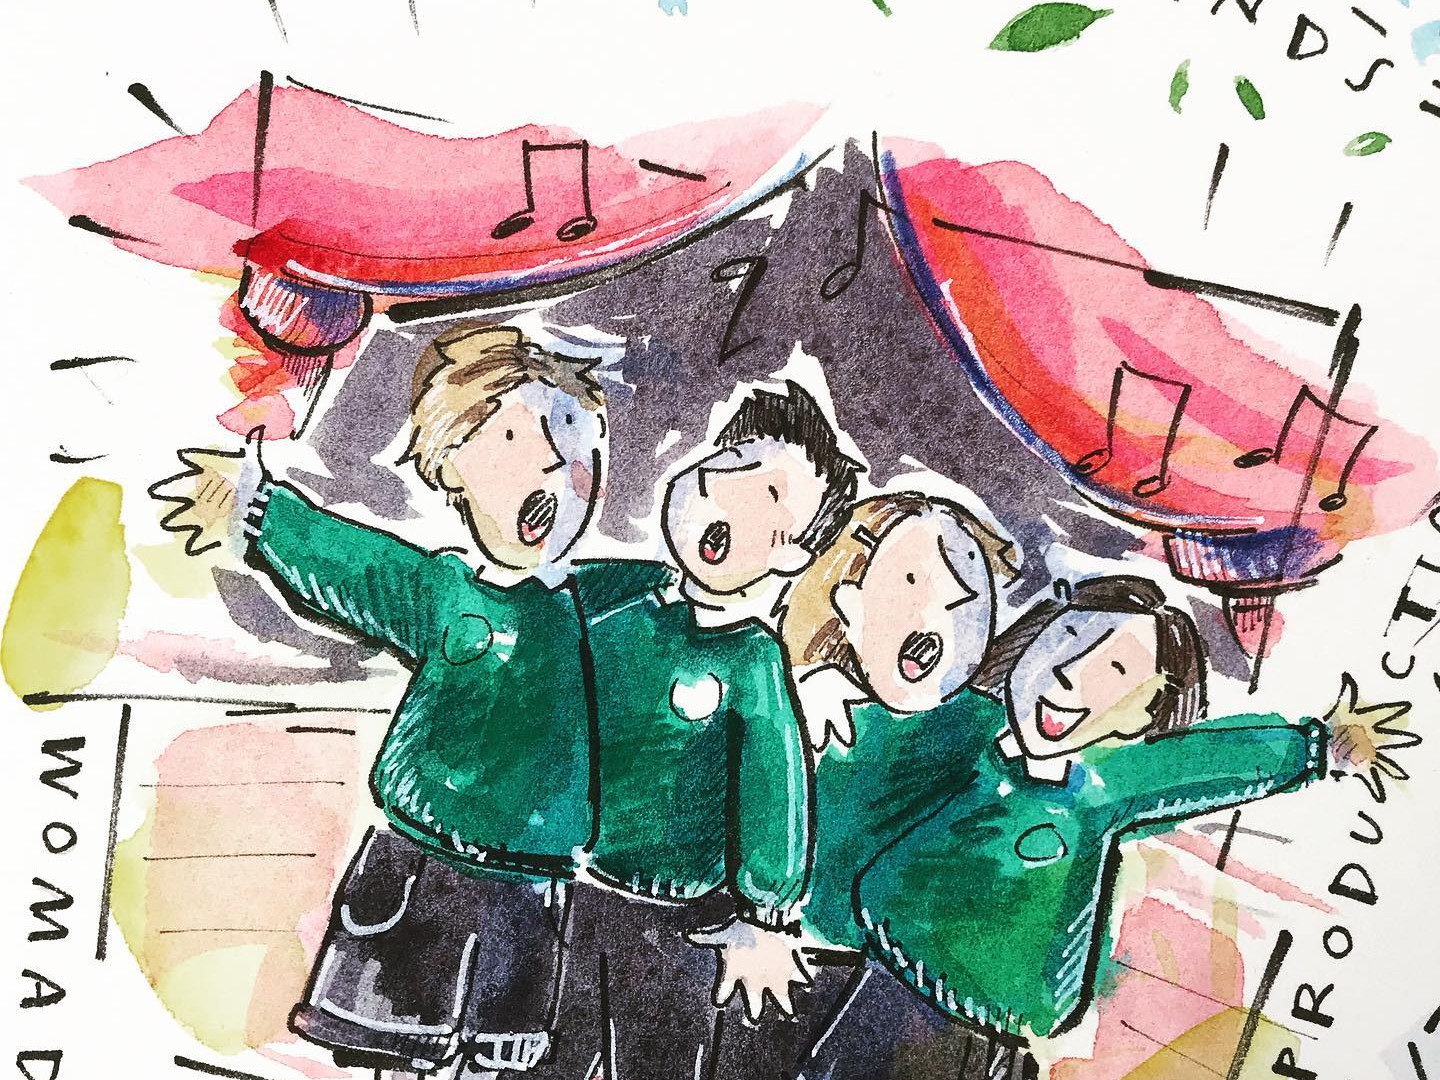 Illustration documenting the community and annual events at Crudwell Primary School